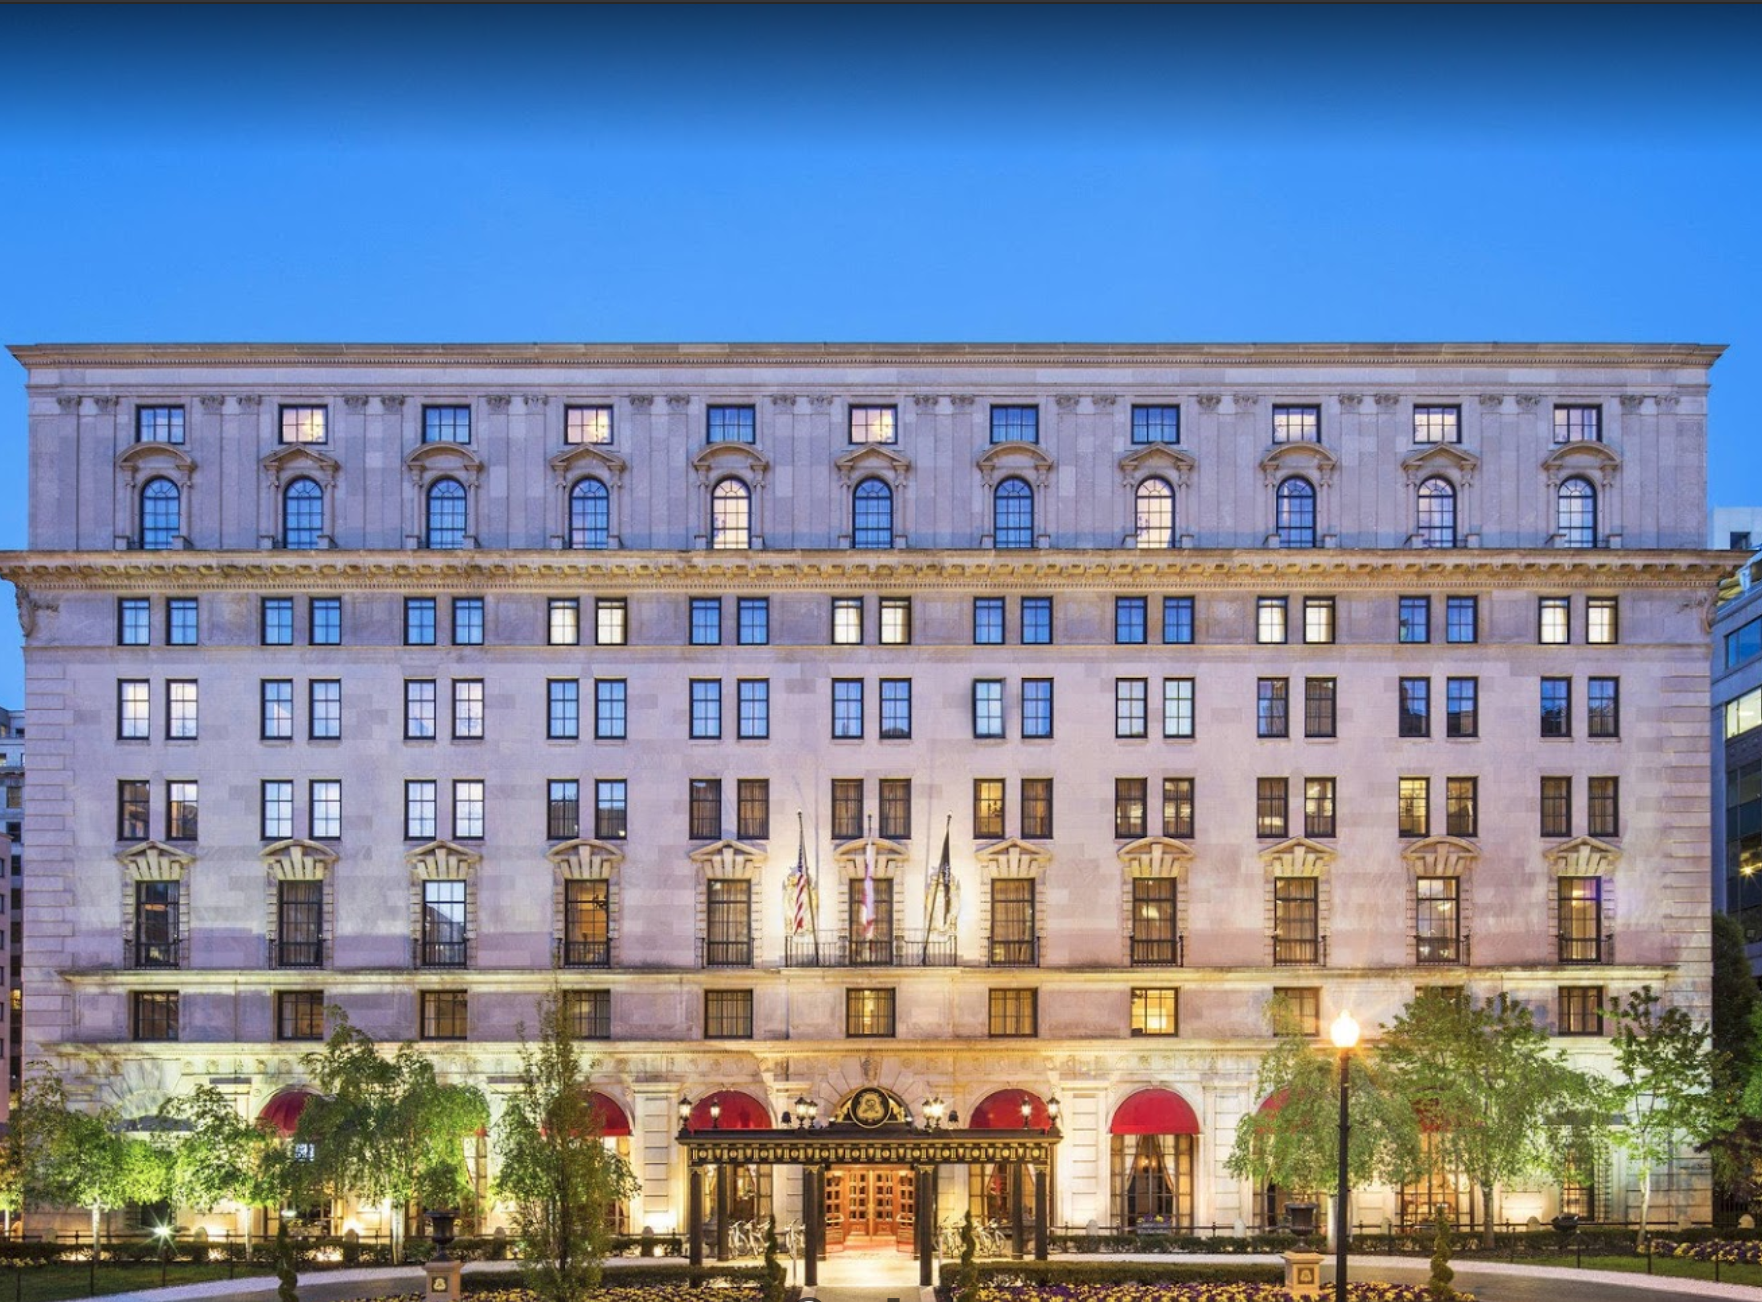 The St. Regis Washington D.C. night exterior